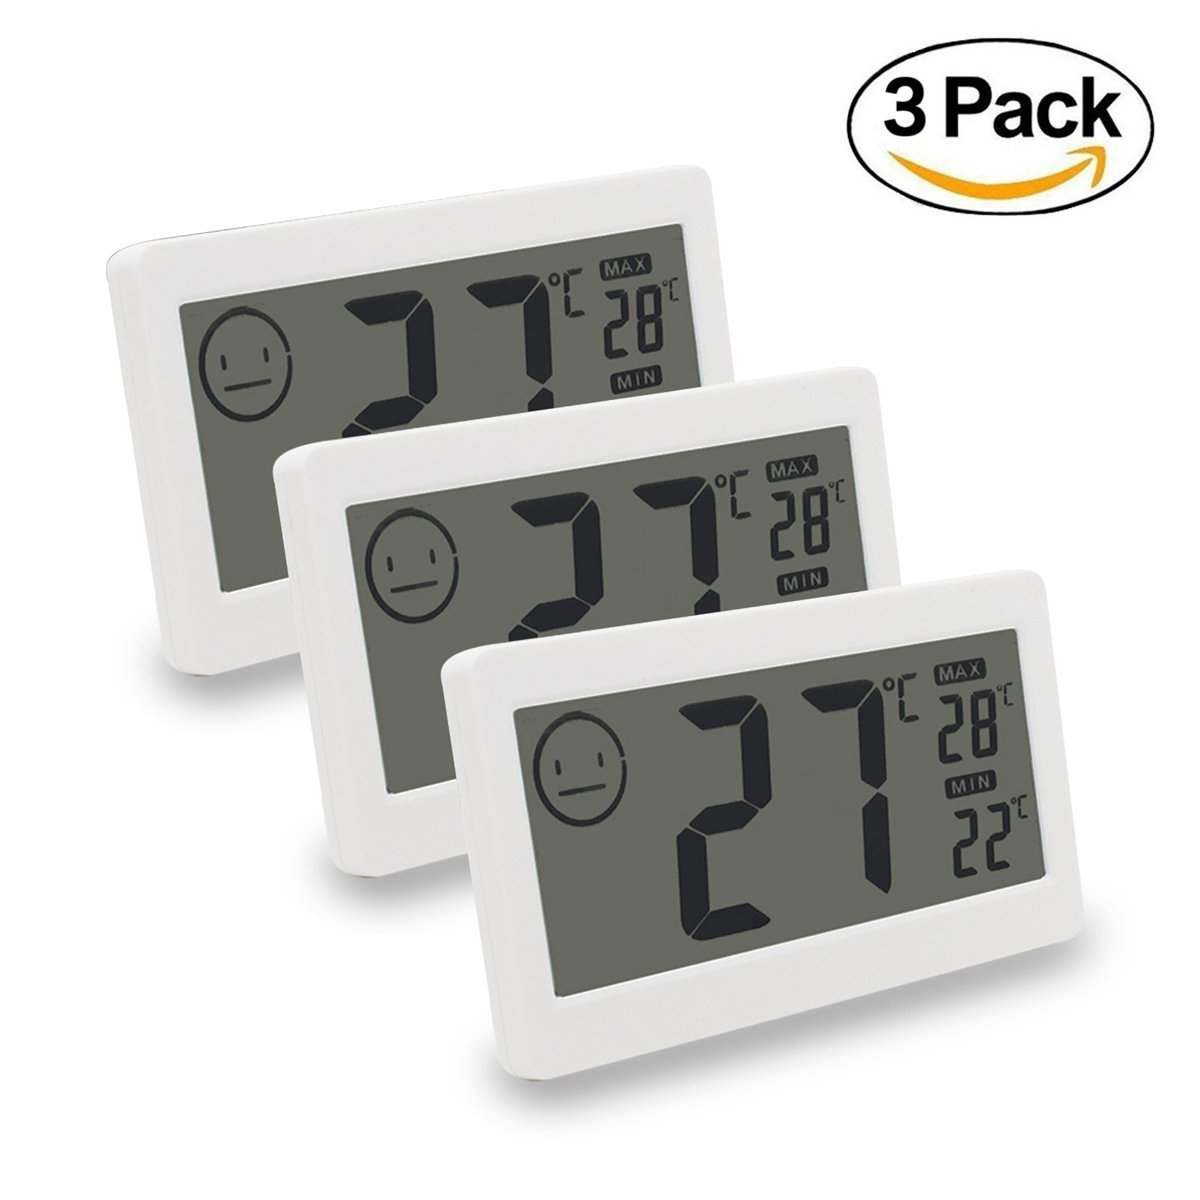 MIKIZ Digital Thermometer Hygrometer Temperature and Humidity Display with 3.3 inch LCD for Household Office Gym Kitchen etc (3 Pack)